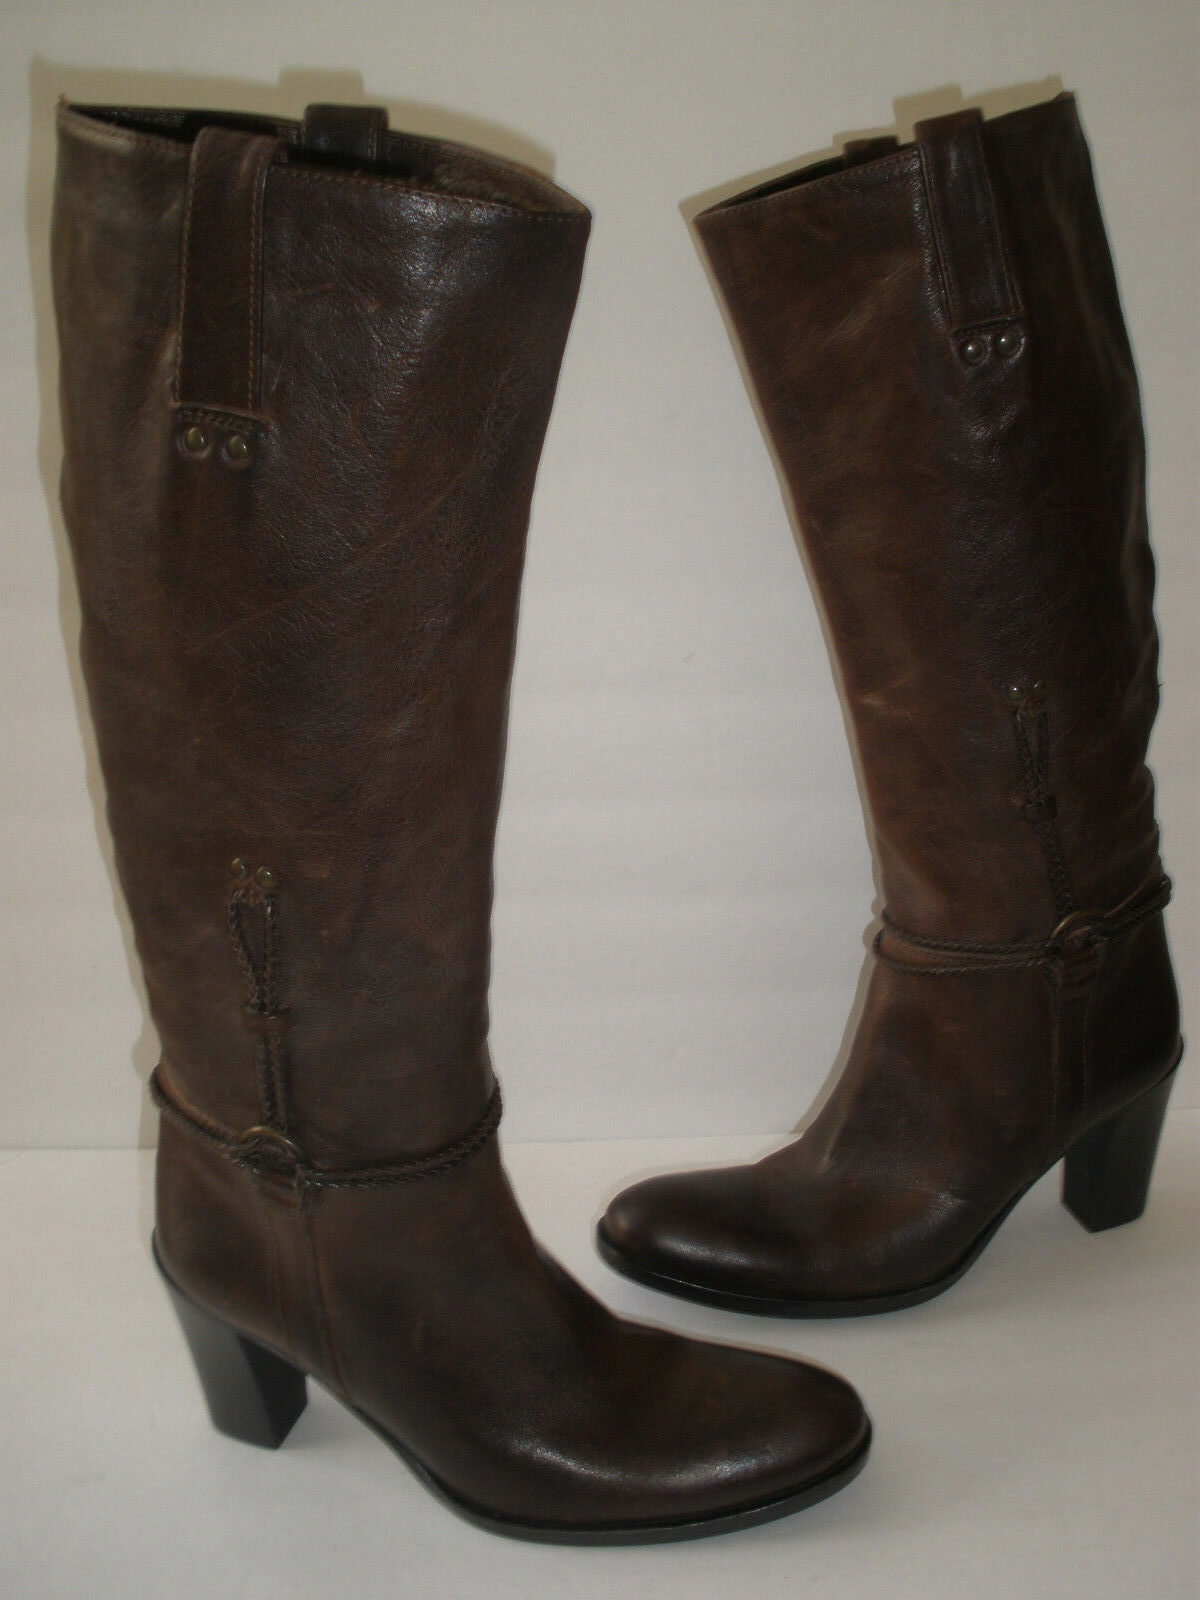 STEVE MADDEN LEATHER KNEE HI BOOT size US 5.5 HOT SEXY MADE IN ITALY 249